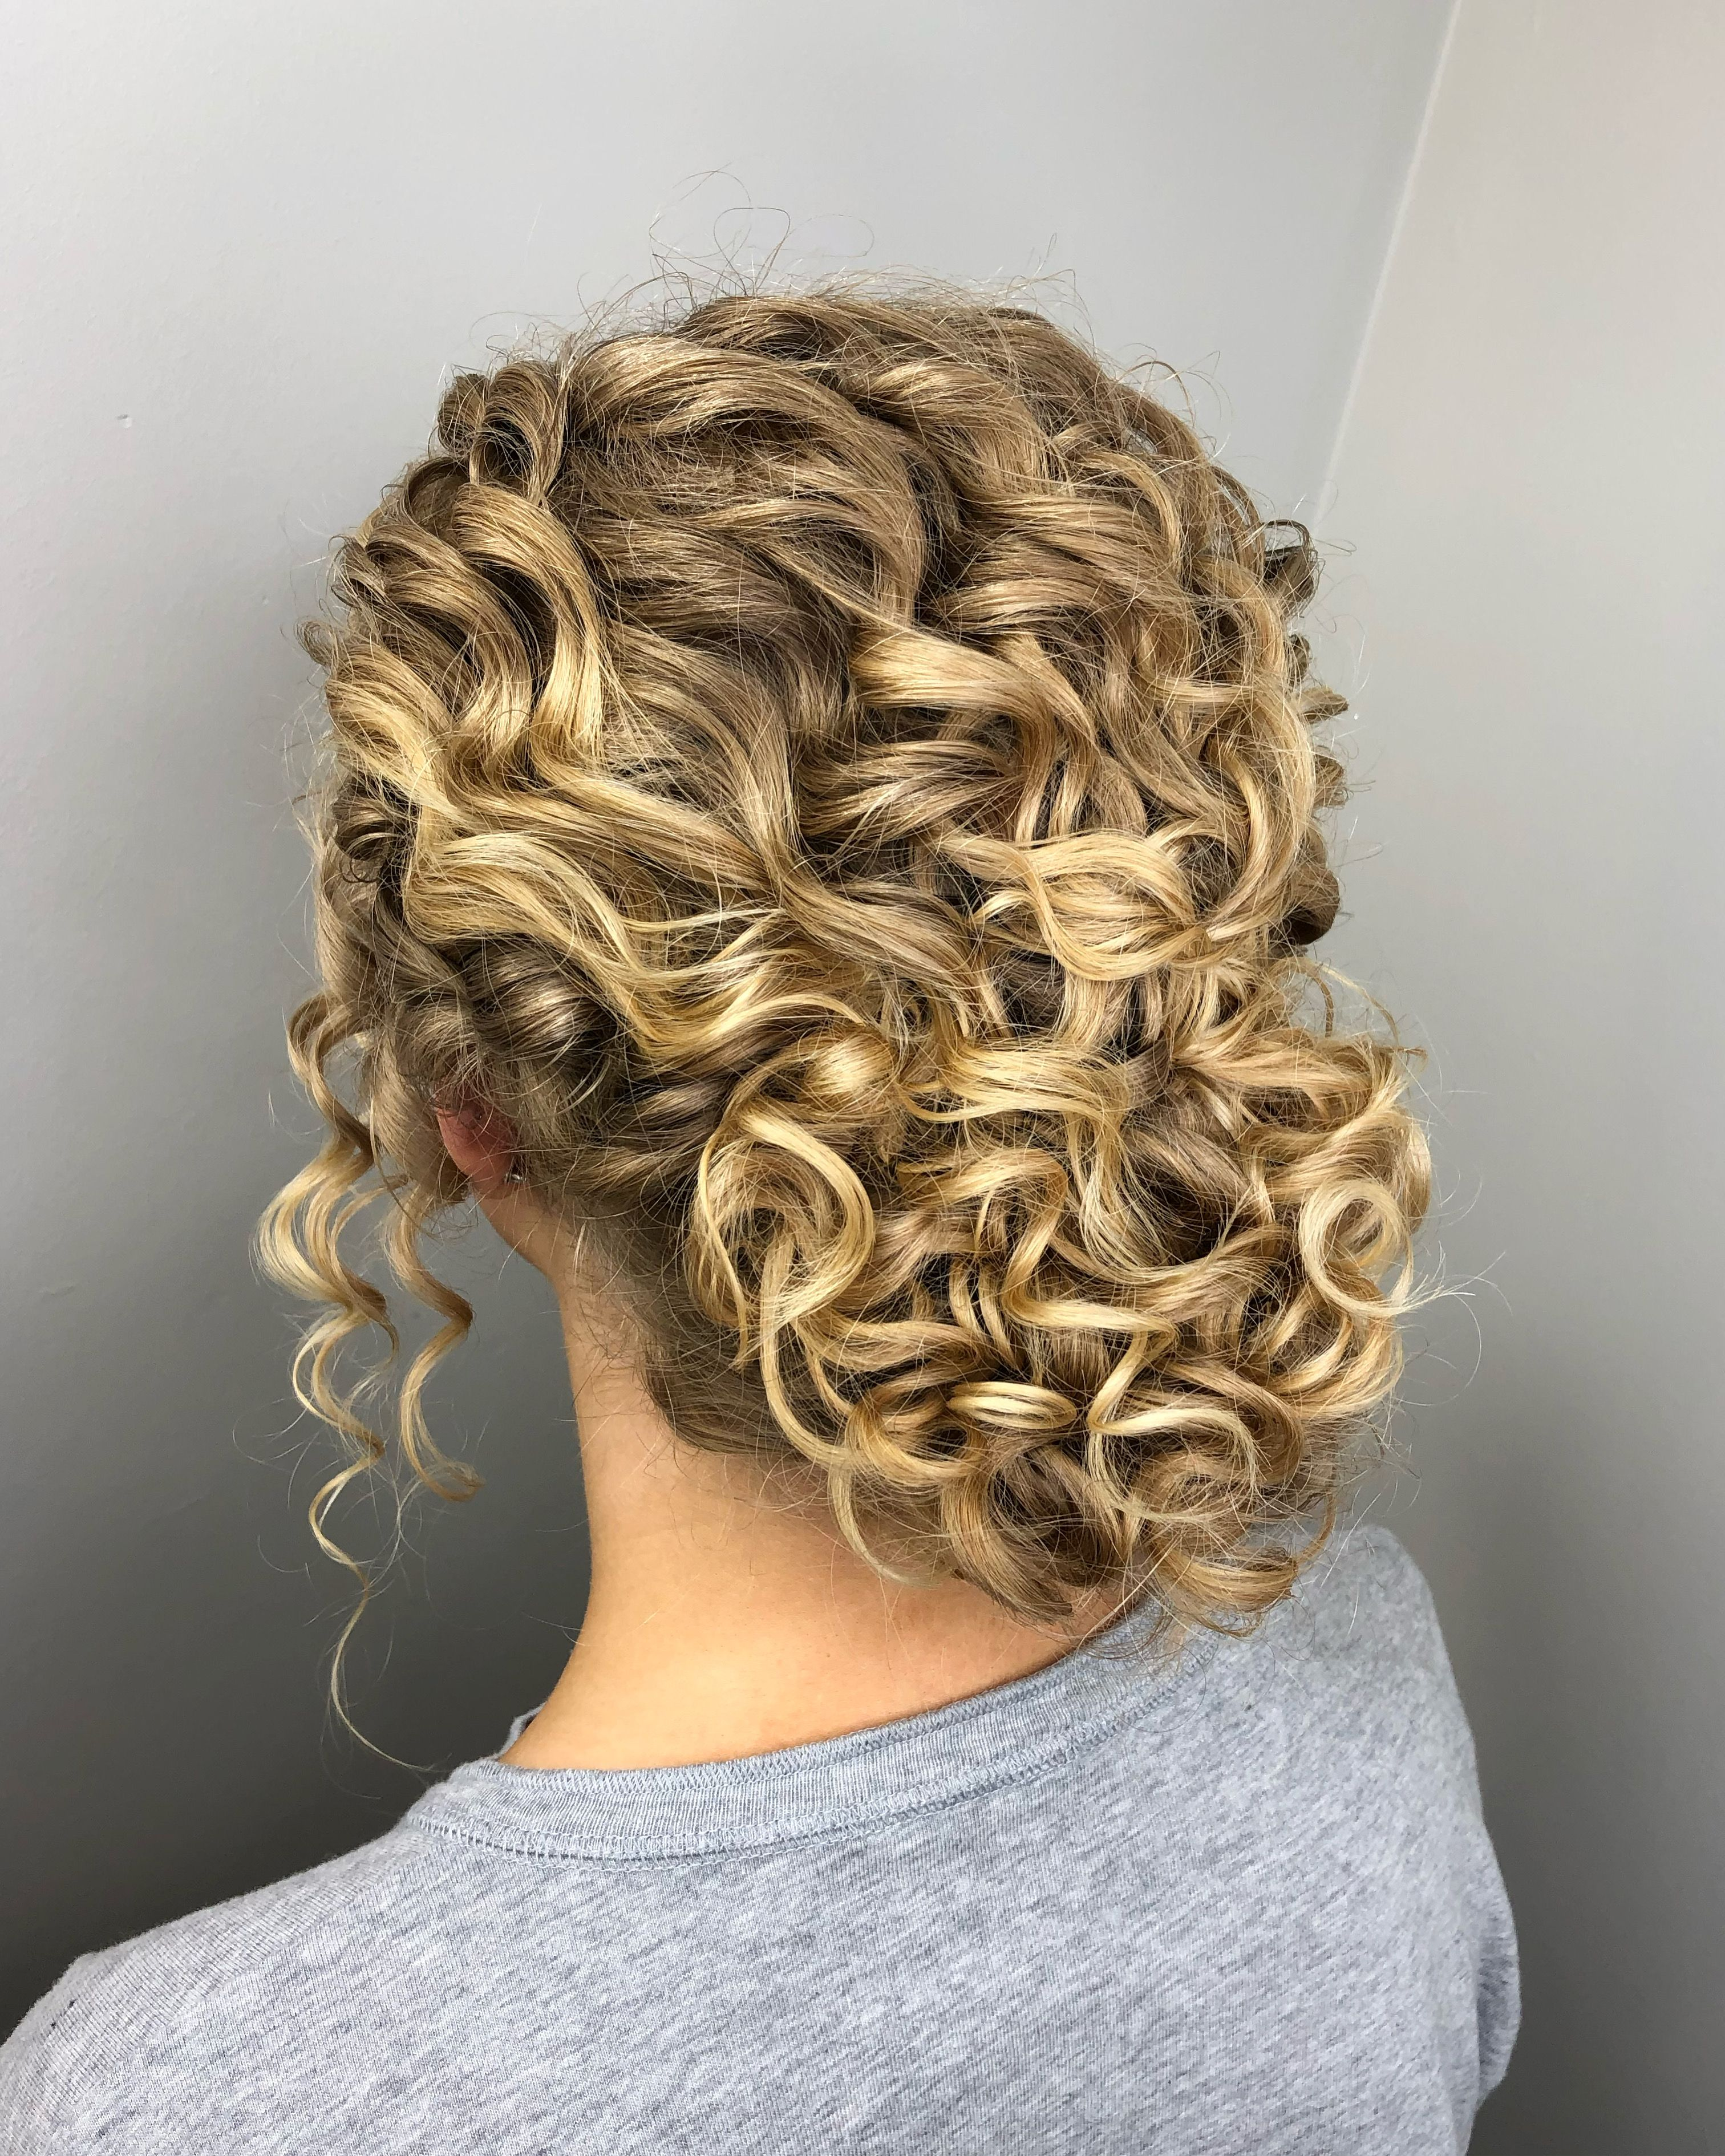 Curly Updo In 2020 Blonde Curly Hair Natural Natural Curls Hairstyles Naturally Curly Hair Updo